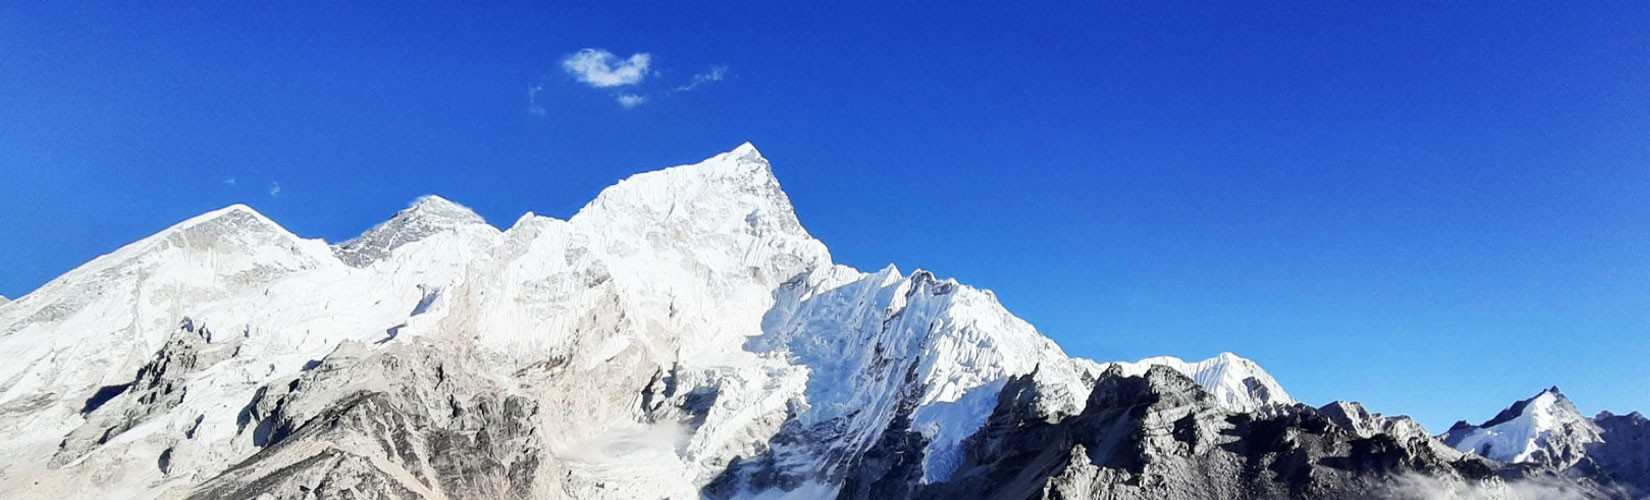 Everest Base Camp Weather